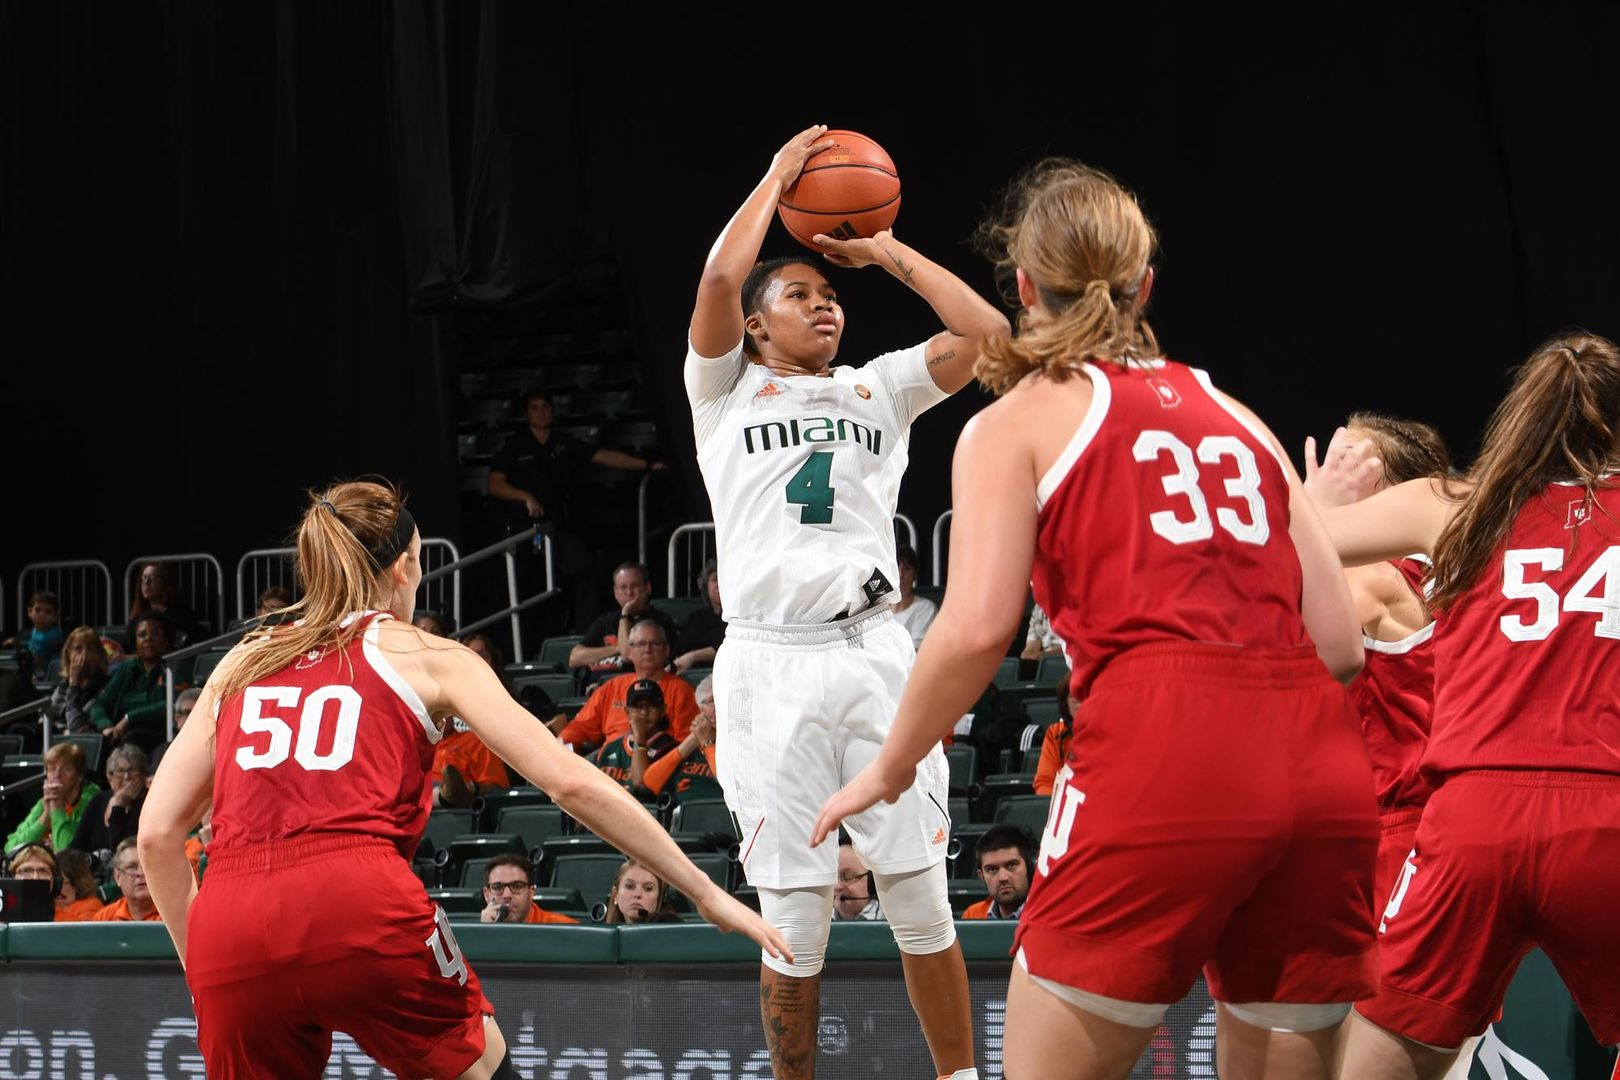 Canes Fall to Indiana in the Big Ten/ACC Challenge